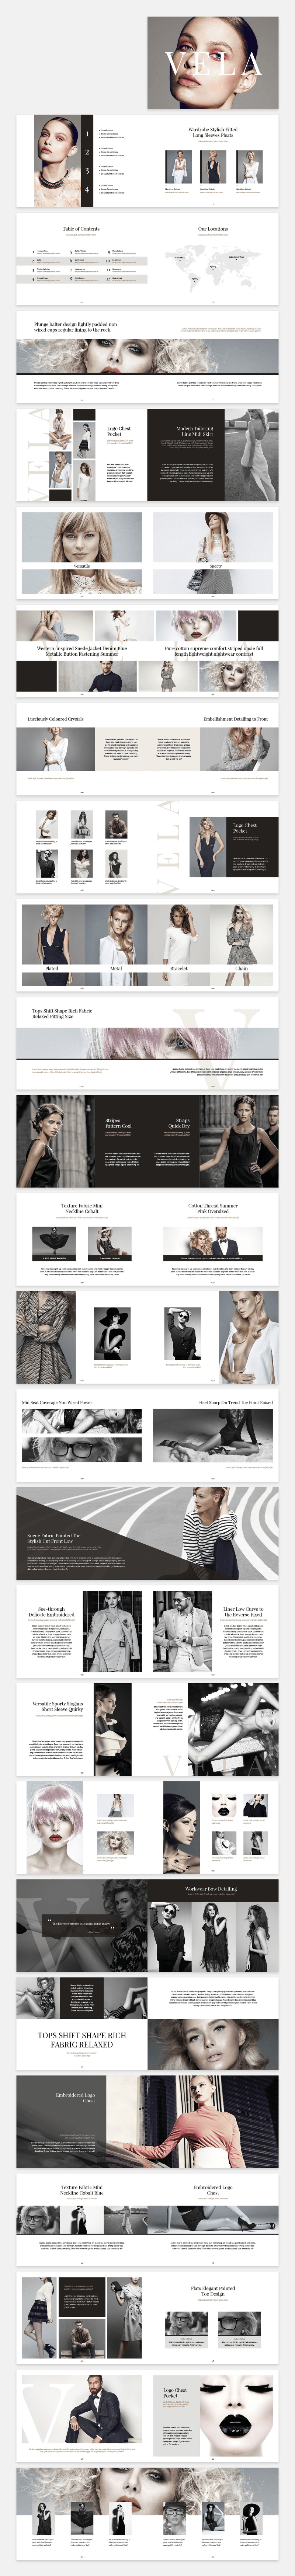 indesign-professional-print-templates-42